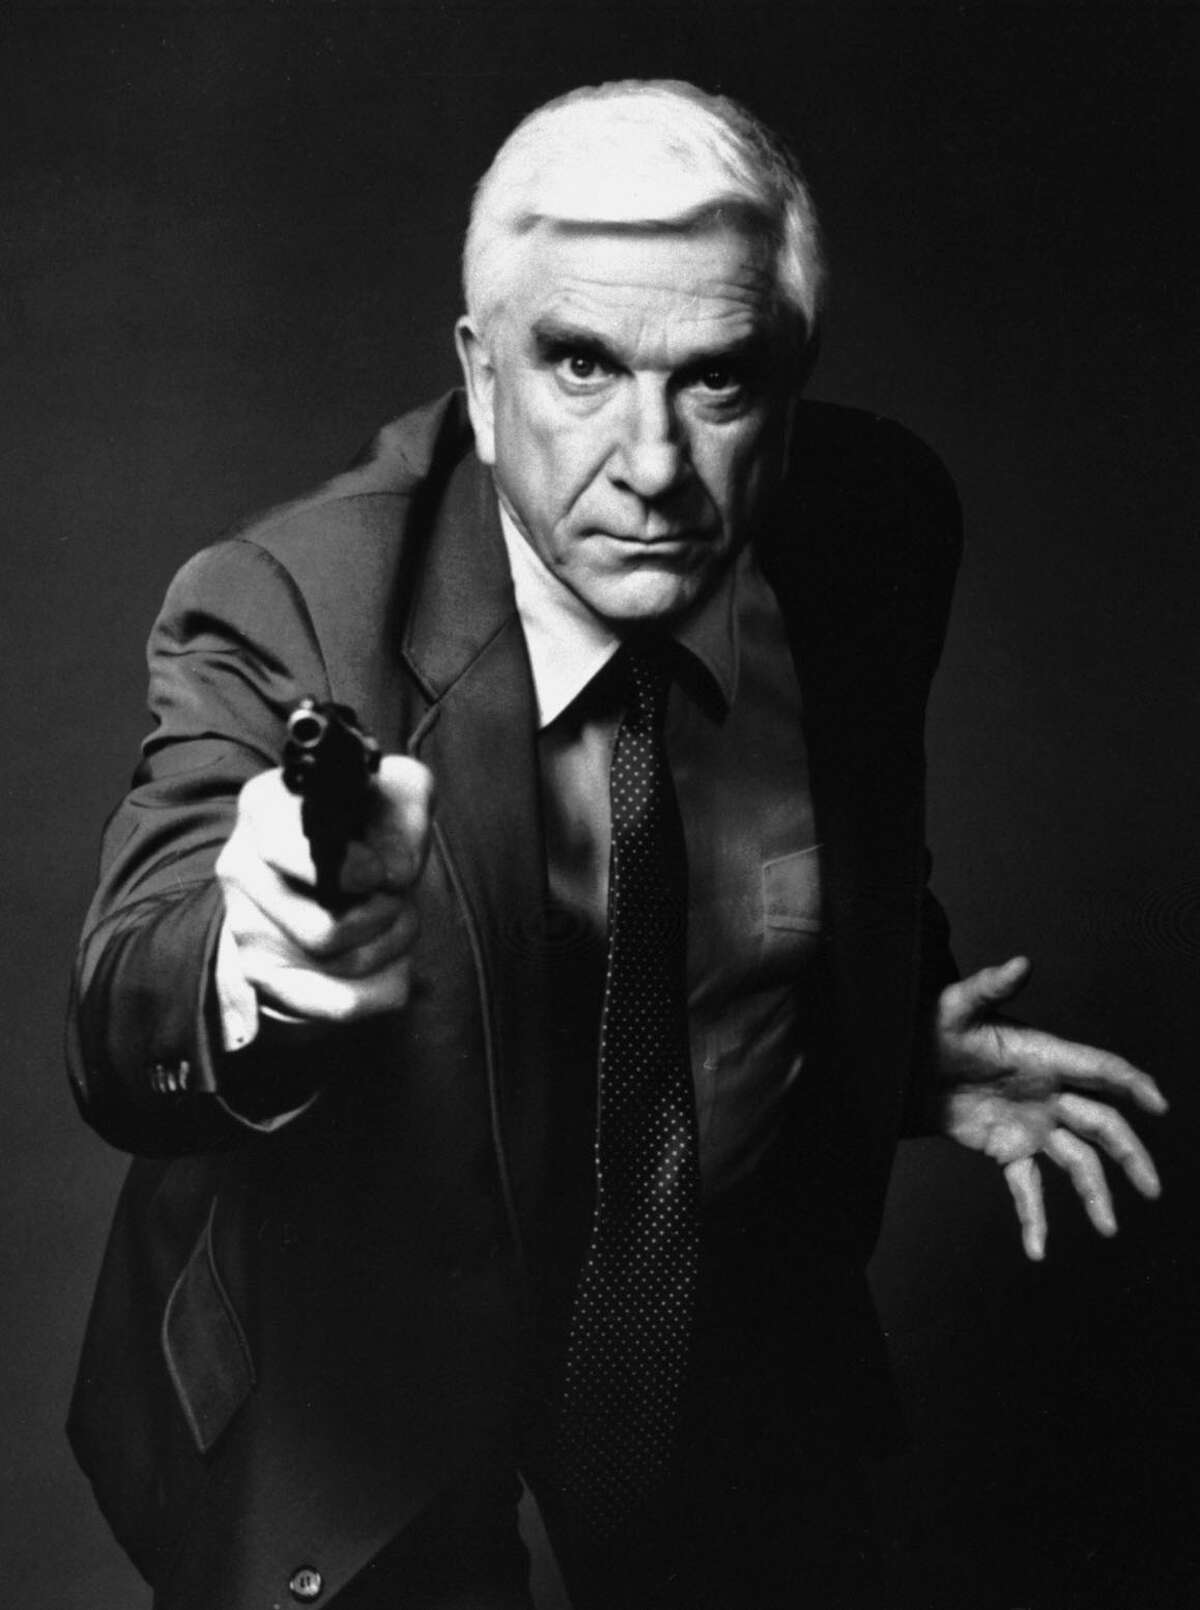 """LESLIE: This 1988 file photo provided by Paramount, shows actor Leslie Nielsen as Lt. Frank Drebin in the movie """"The Naked Gun: From the Files of Police Squad!"""" The Canadian-born Nielsen, who went from drama to inspired bumbling as a hapless doctor in """"Airplane!"""" and the accident-prone detective Frank Drebin in """"The Naked Gun"""" comedies died in 2010. (AP Photo/Paramount, File)"""